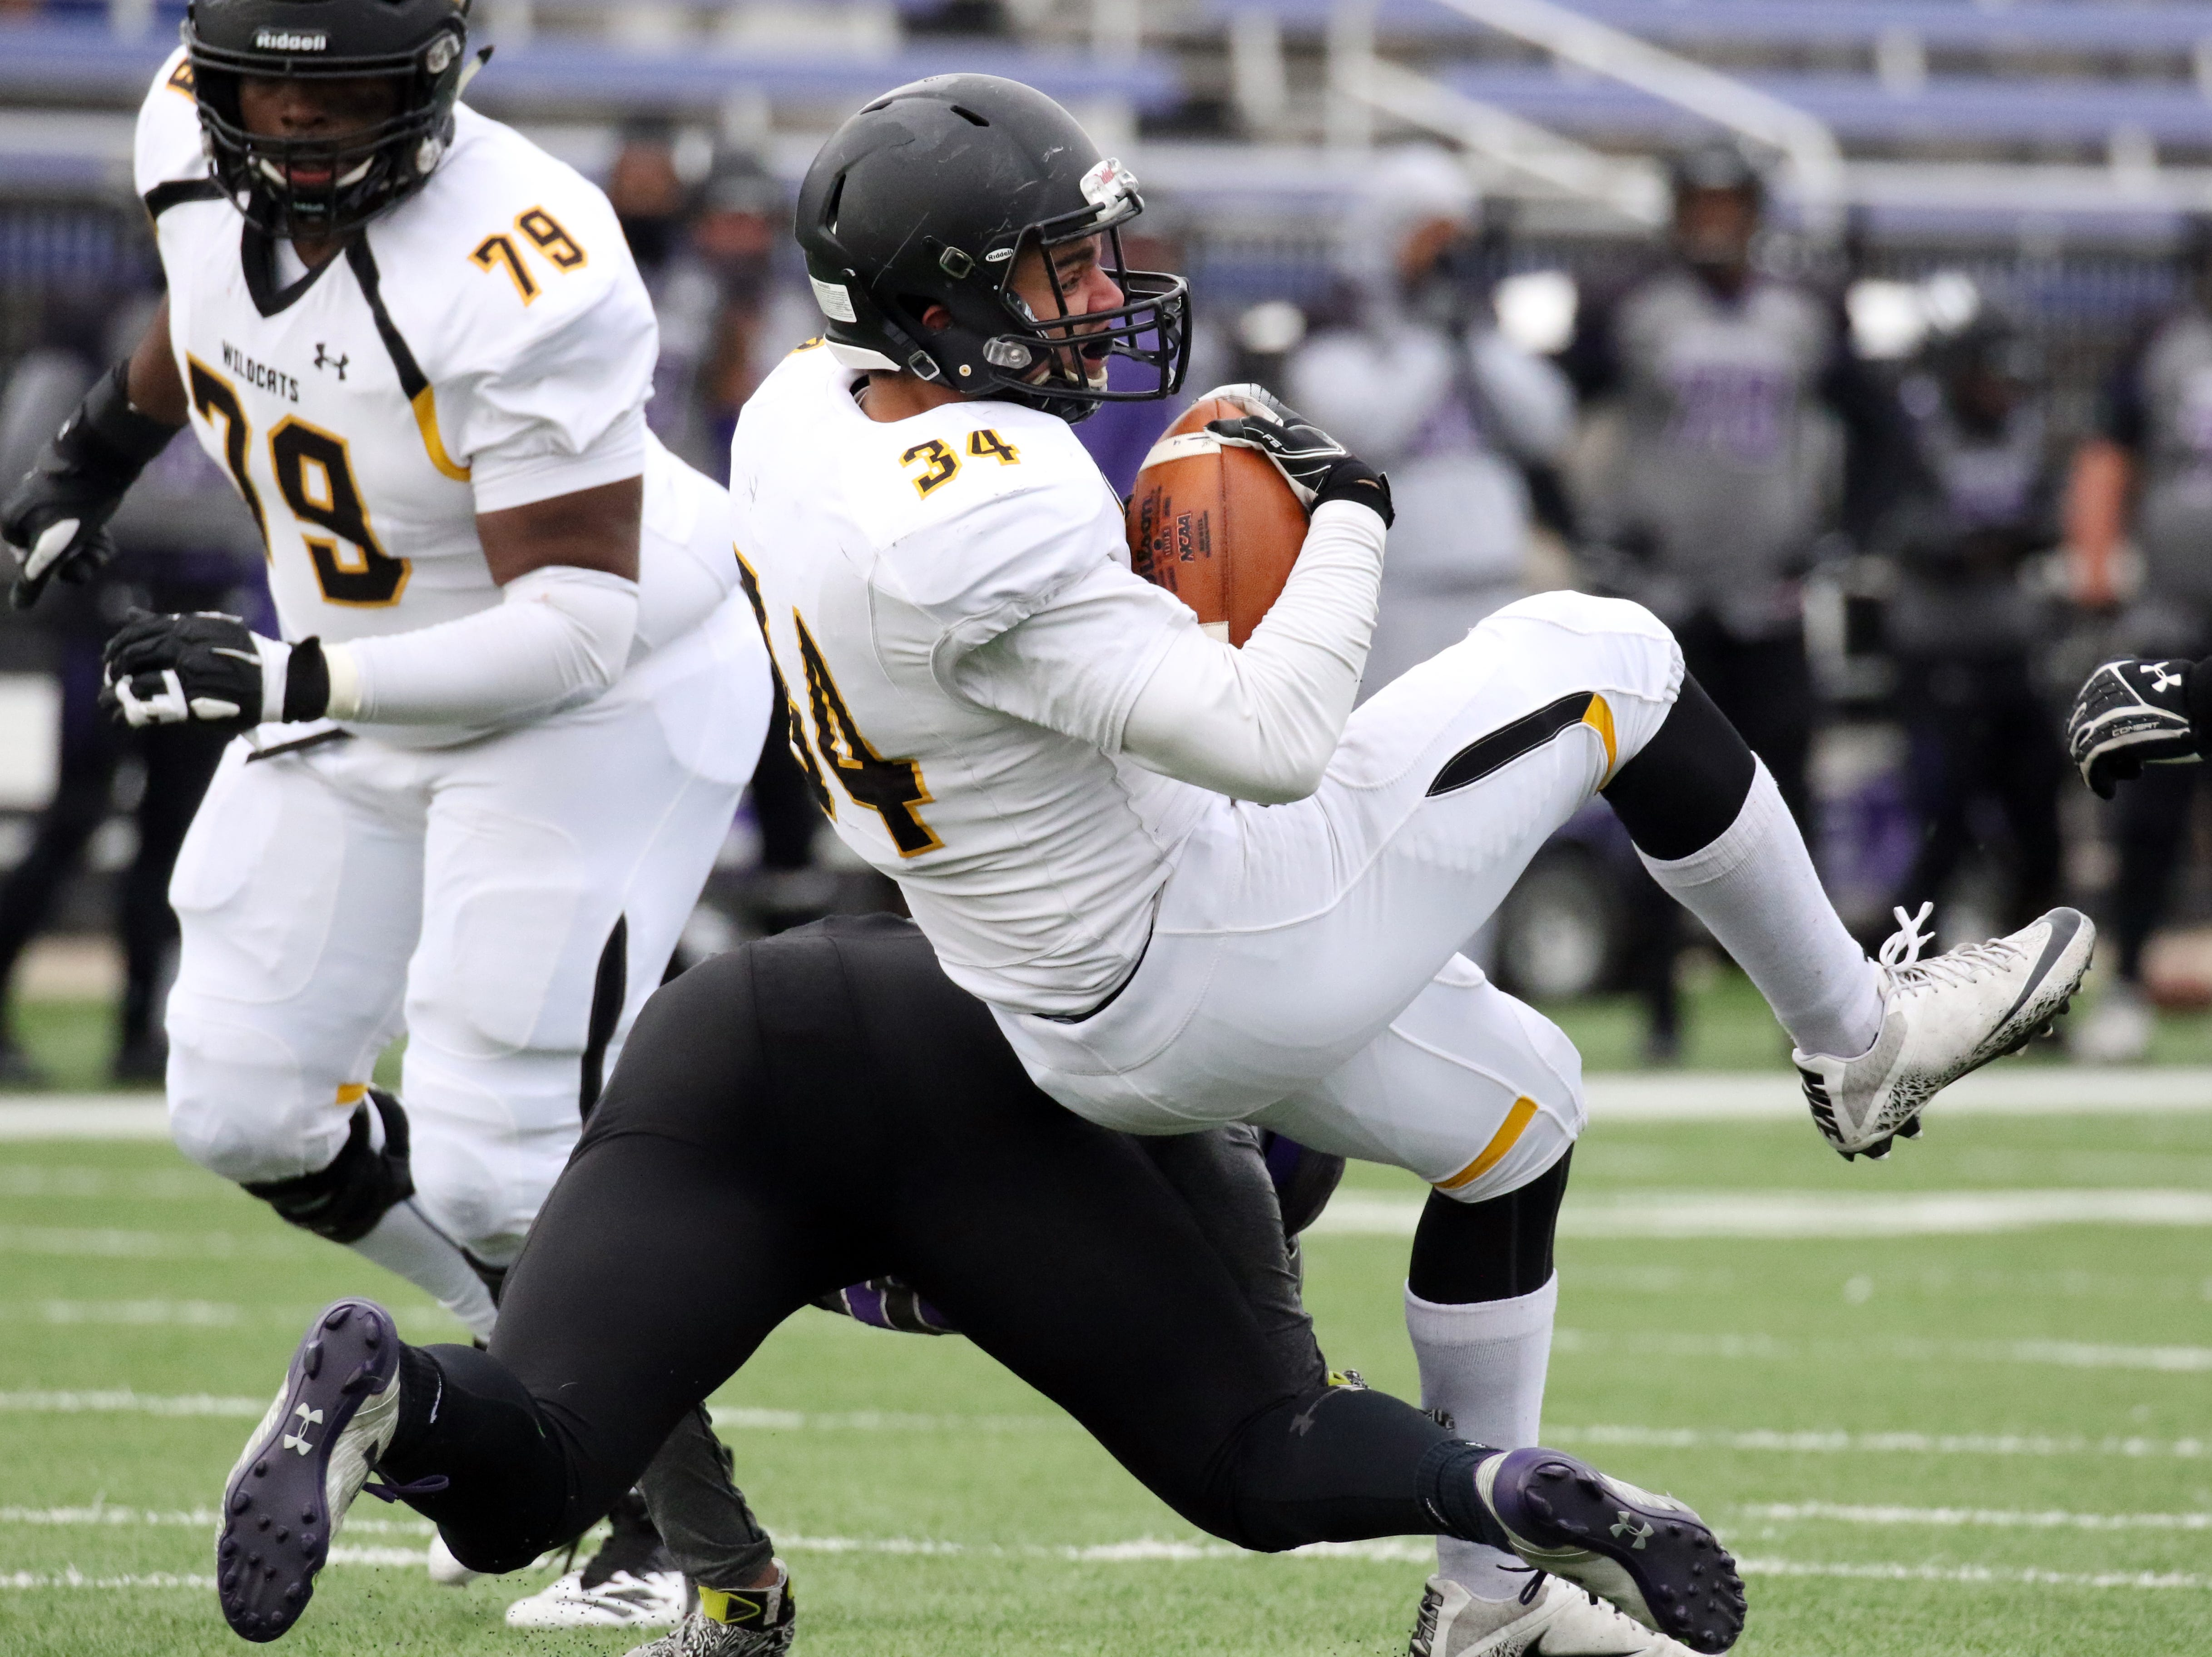 Wayne State RB, Maliki Wilson is upended by Aaron Ortiz of the University of Sioux Falls during Saturday's game at Bob Young Field in Sioux Falls.